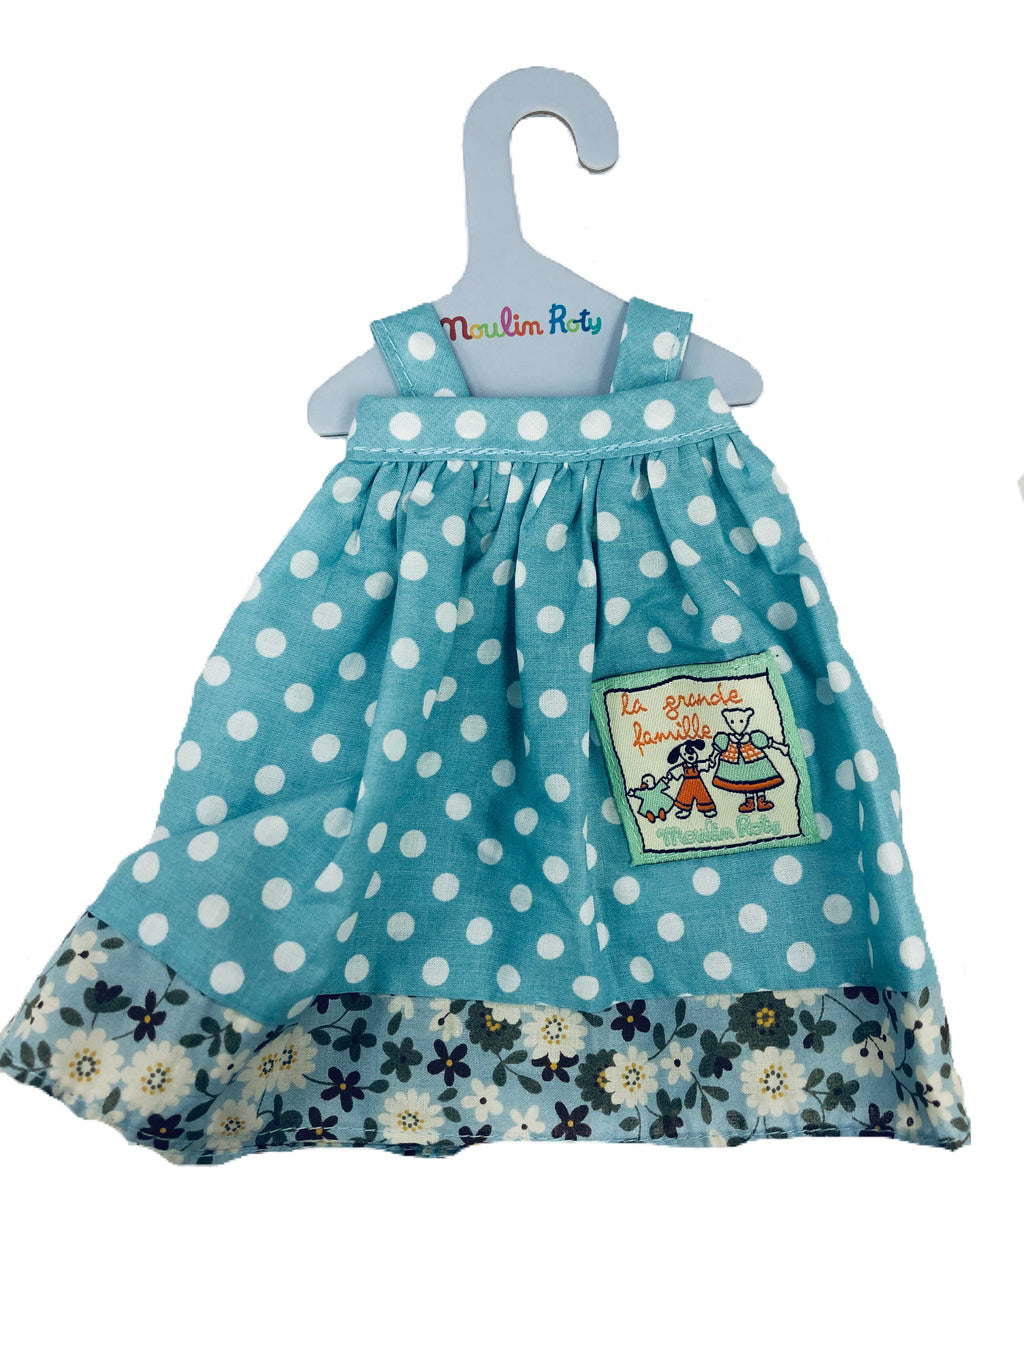 Moulin Roty | Cotton Doll Dress | Blue Polka Dot Apron Dress | Size: for 30cm tall plush animals and dolls | Age: 0+